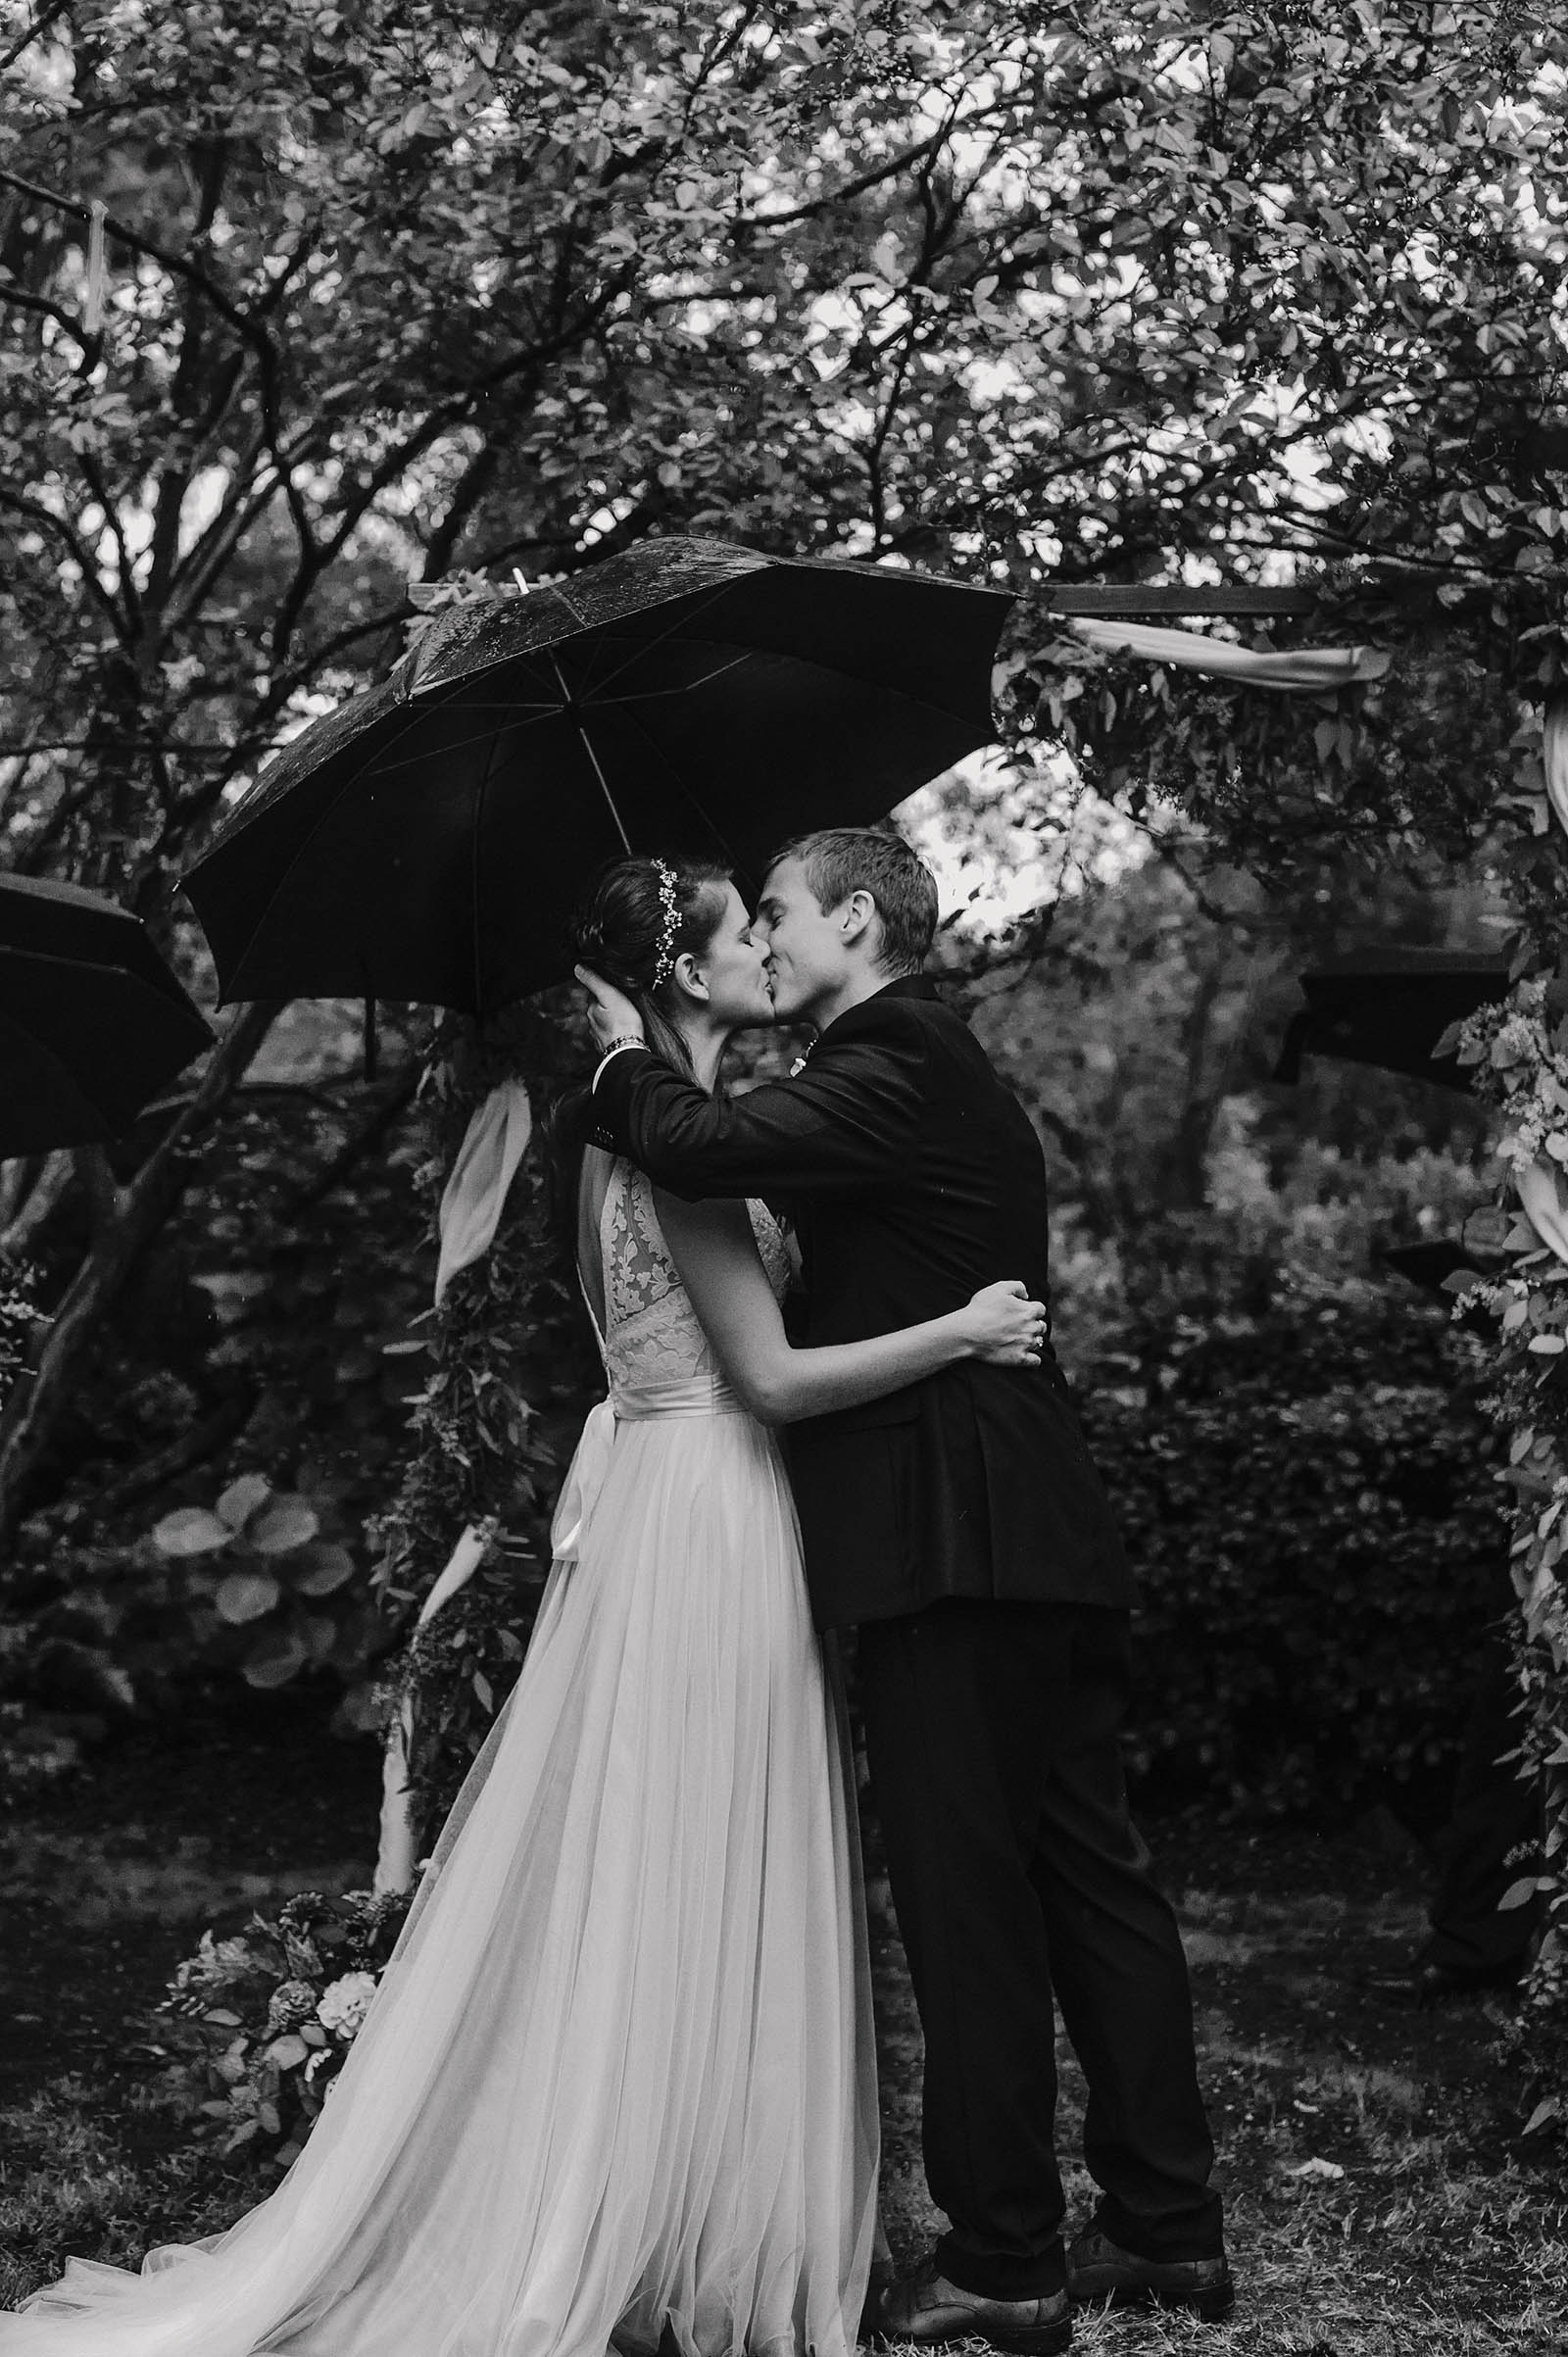 Bride and Groom's first kiss under an umbrella | Crystal Springs Rhododendron Garden